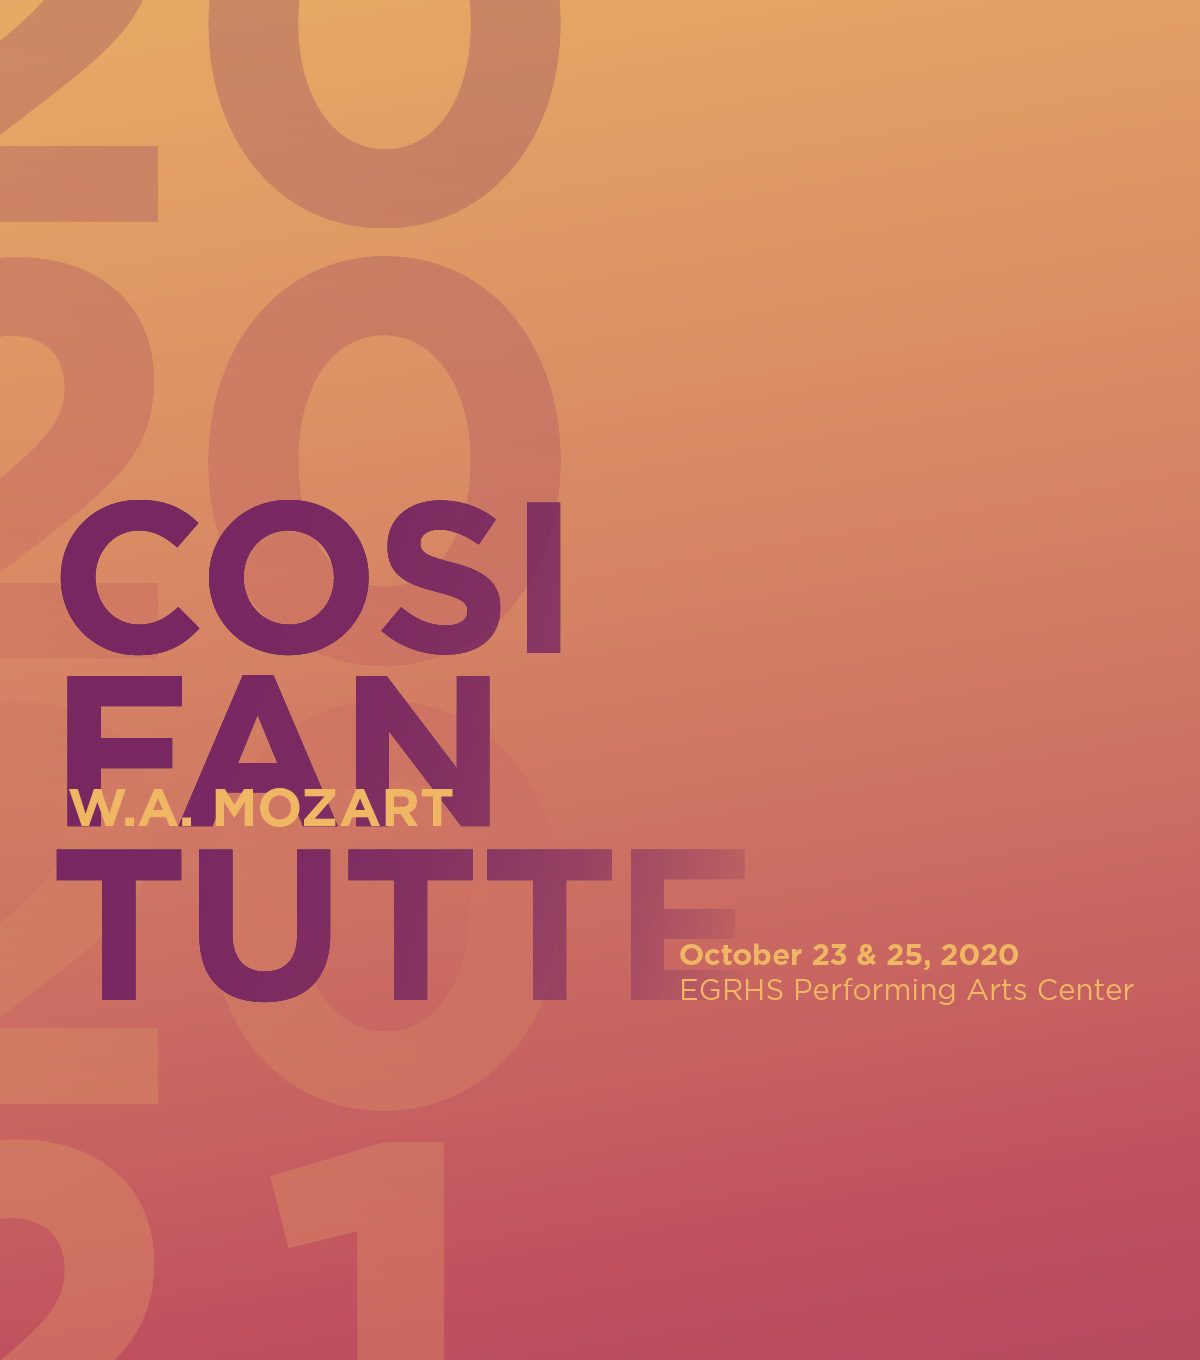 Cosi fan tutte by W.A. Mozart - October 23 & 25, 2020; EGRHS Performing Arts Center